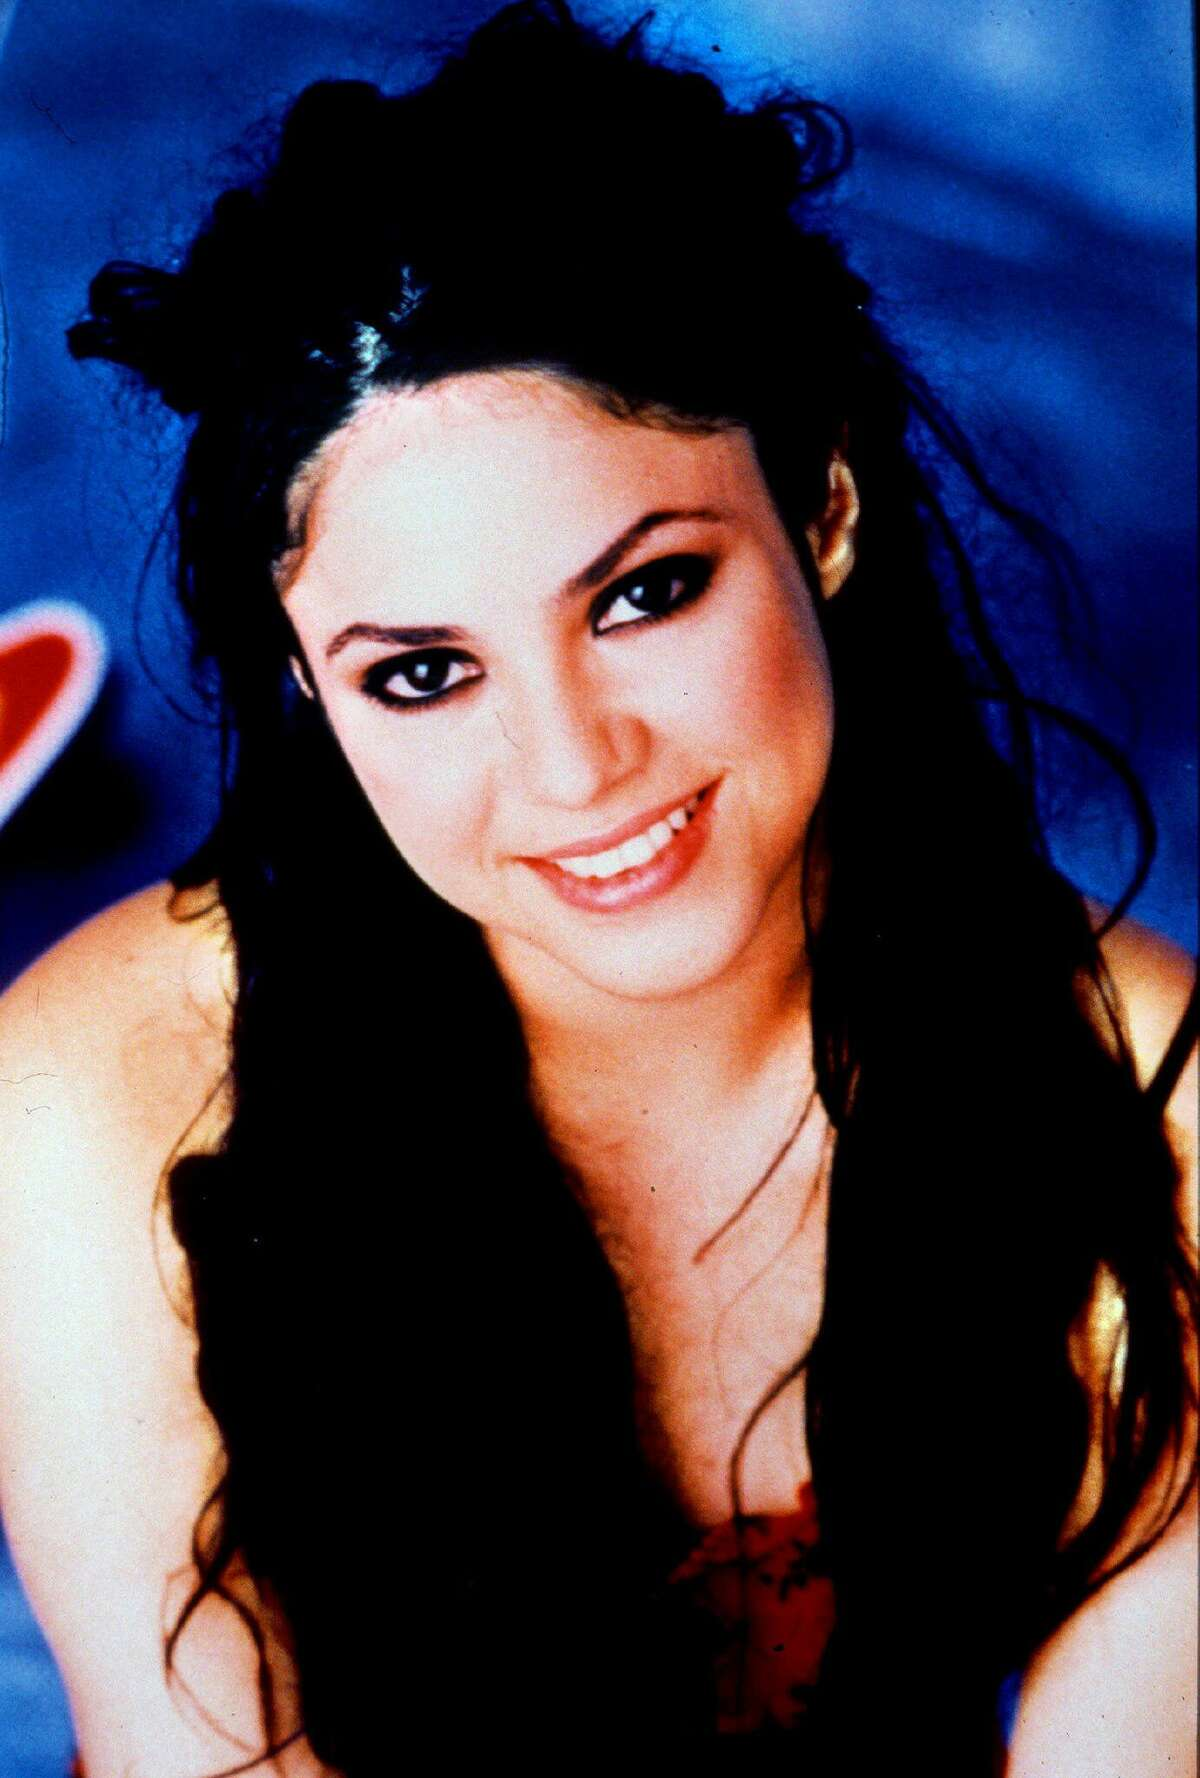 creidt: El Universal archive Blonde or brunnete? Colombian singer was brunnete at the beginning of her career, now she's blonde. La Voz SHAKIRA:LA CANTANTE COLOMBIANA SHAKIRA,QUE HOY PRESENTO SU NUEVO DISCO